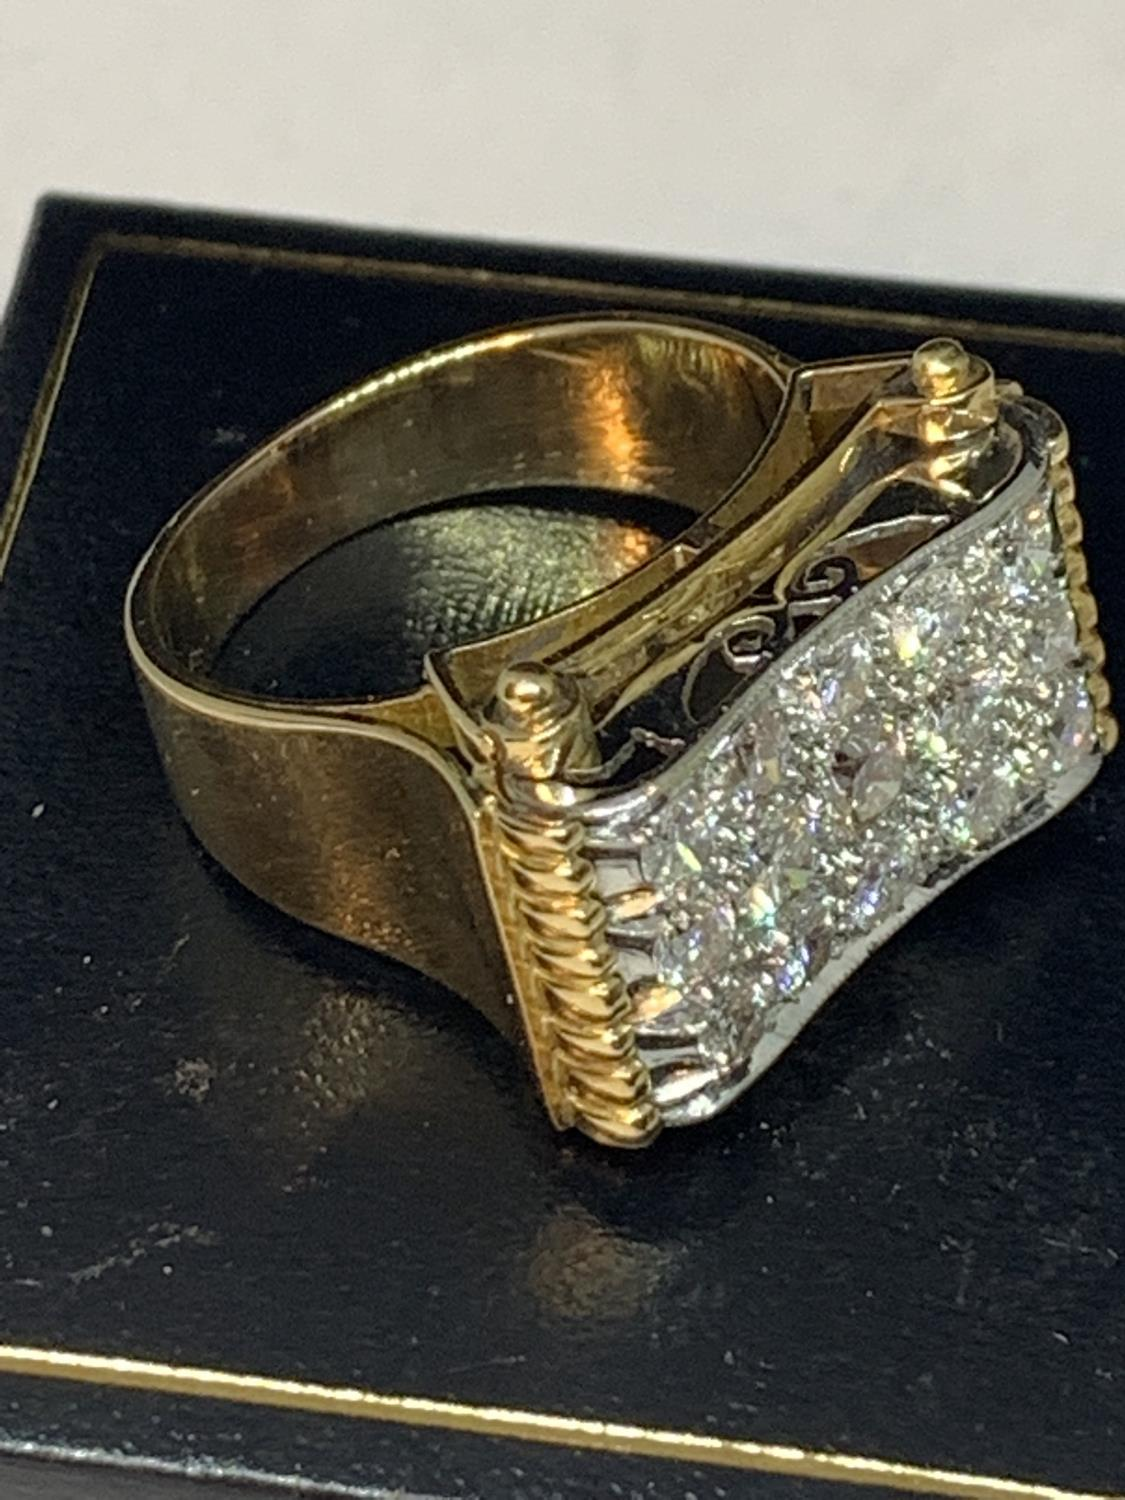 A HEAVY 18 CARAT GOLD RING WITH FIFTEEN DIAMONDS SET IN A RECTANGLE OF DIAMOND CHIPS GROSS WEIGHT 13 - Image 8 of 10